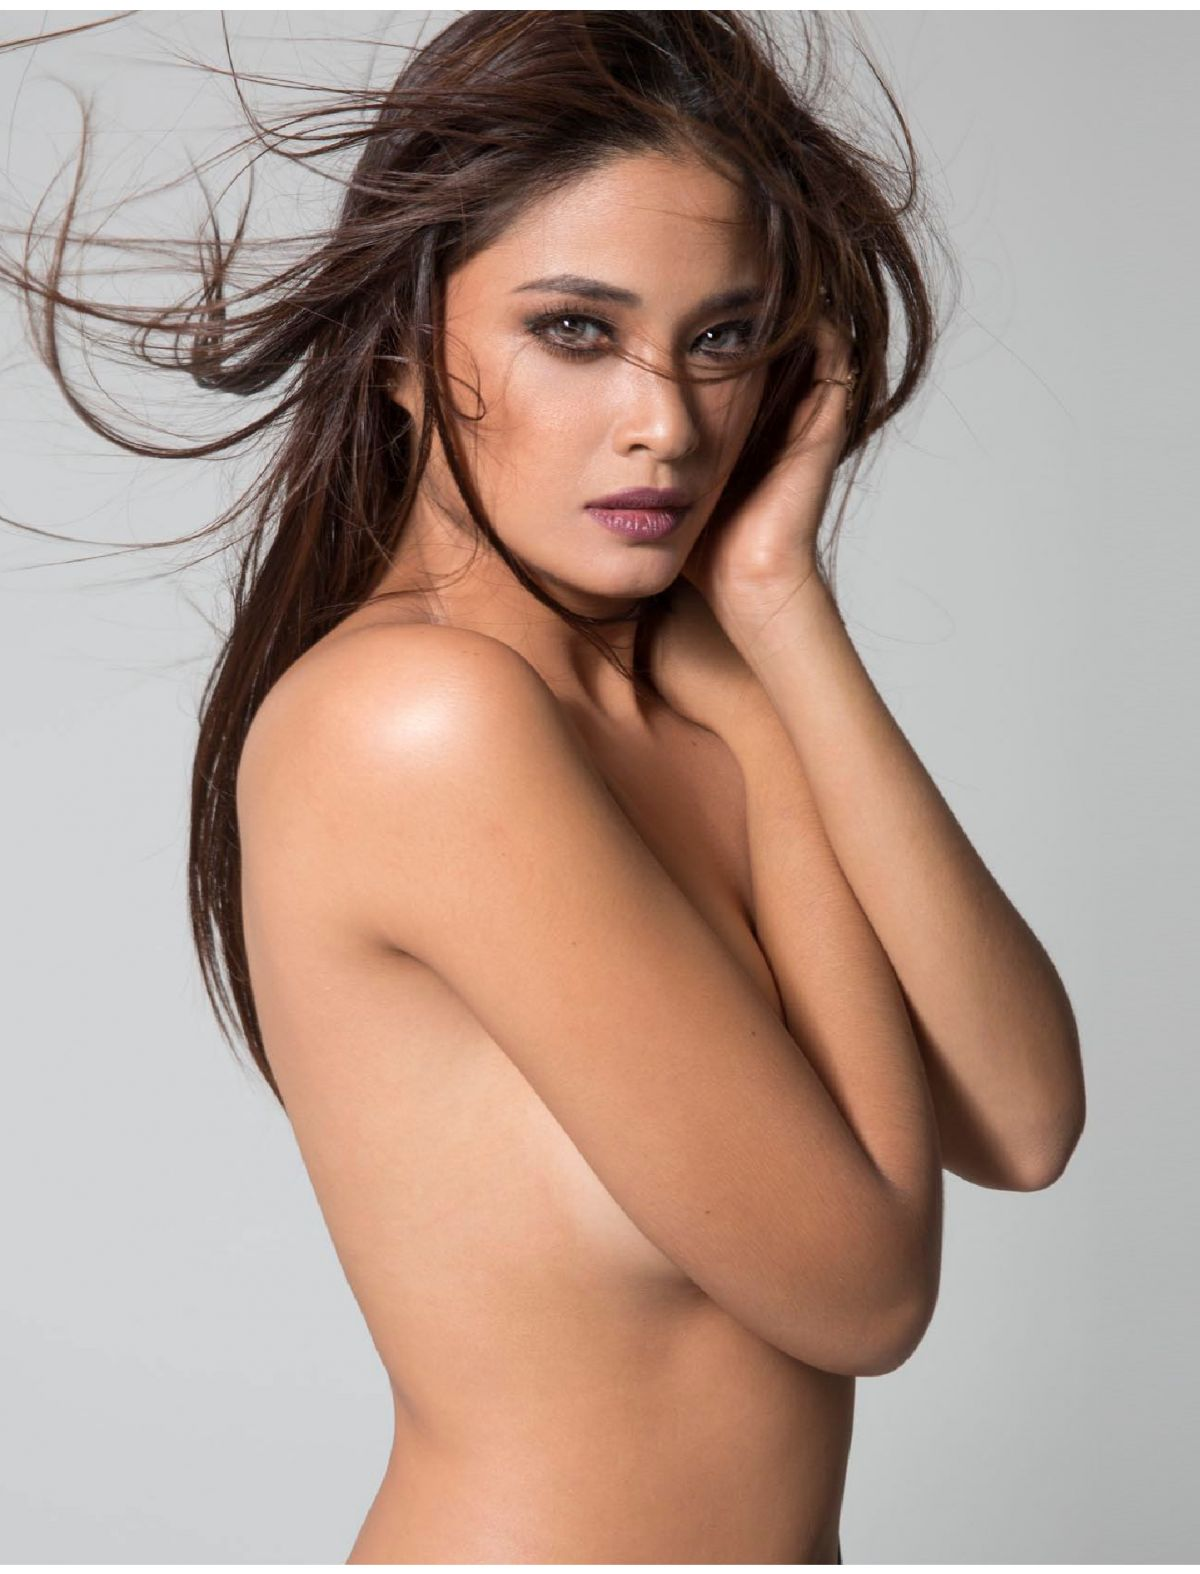 yam concepcion fhm topless pics 01